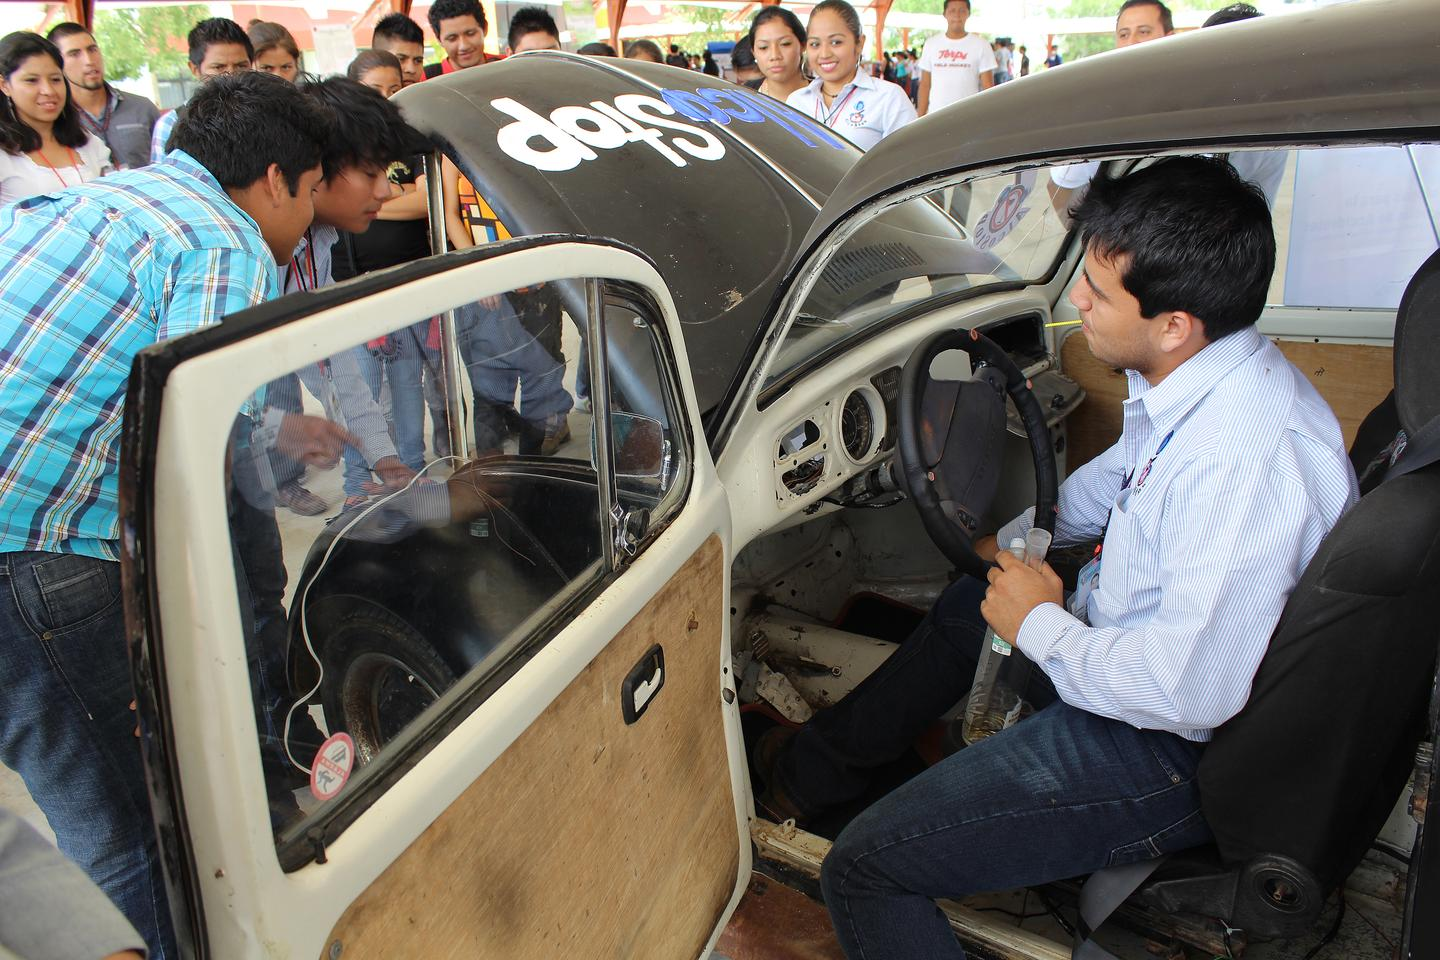 AlcoStop is demonstrated in a VW Beetle